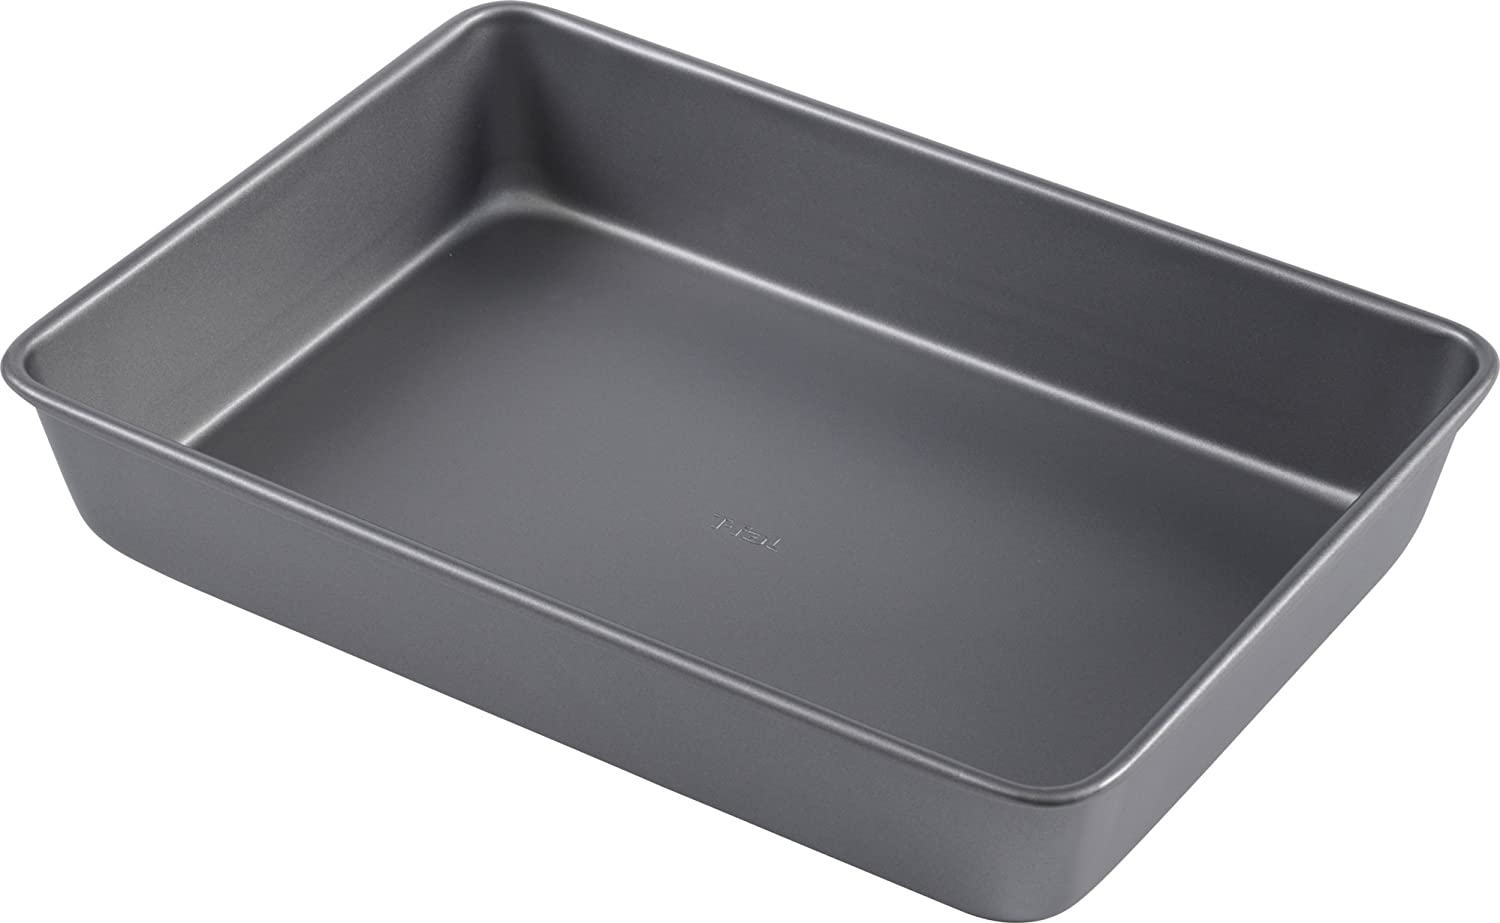 "T-fal 84886 Commercial Oblong Nonstick Cake Pan, 9"" x 13"", Gray"